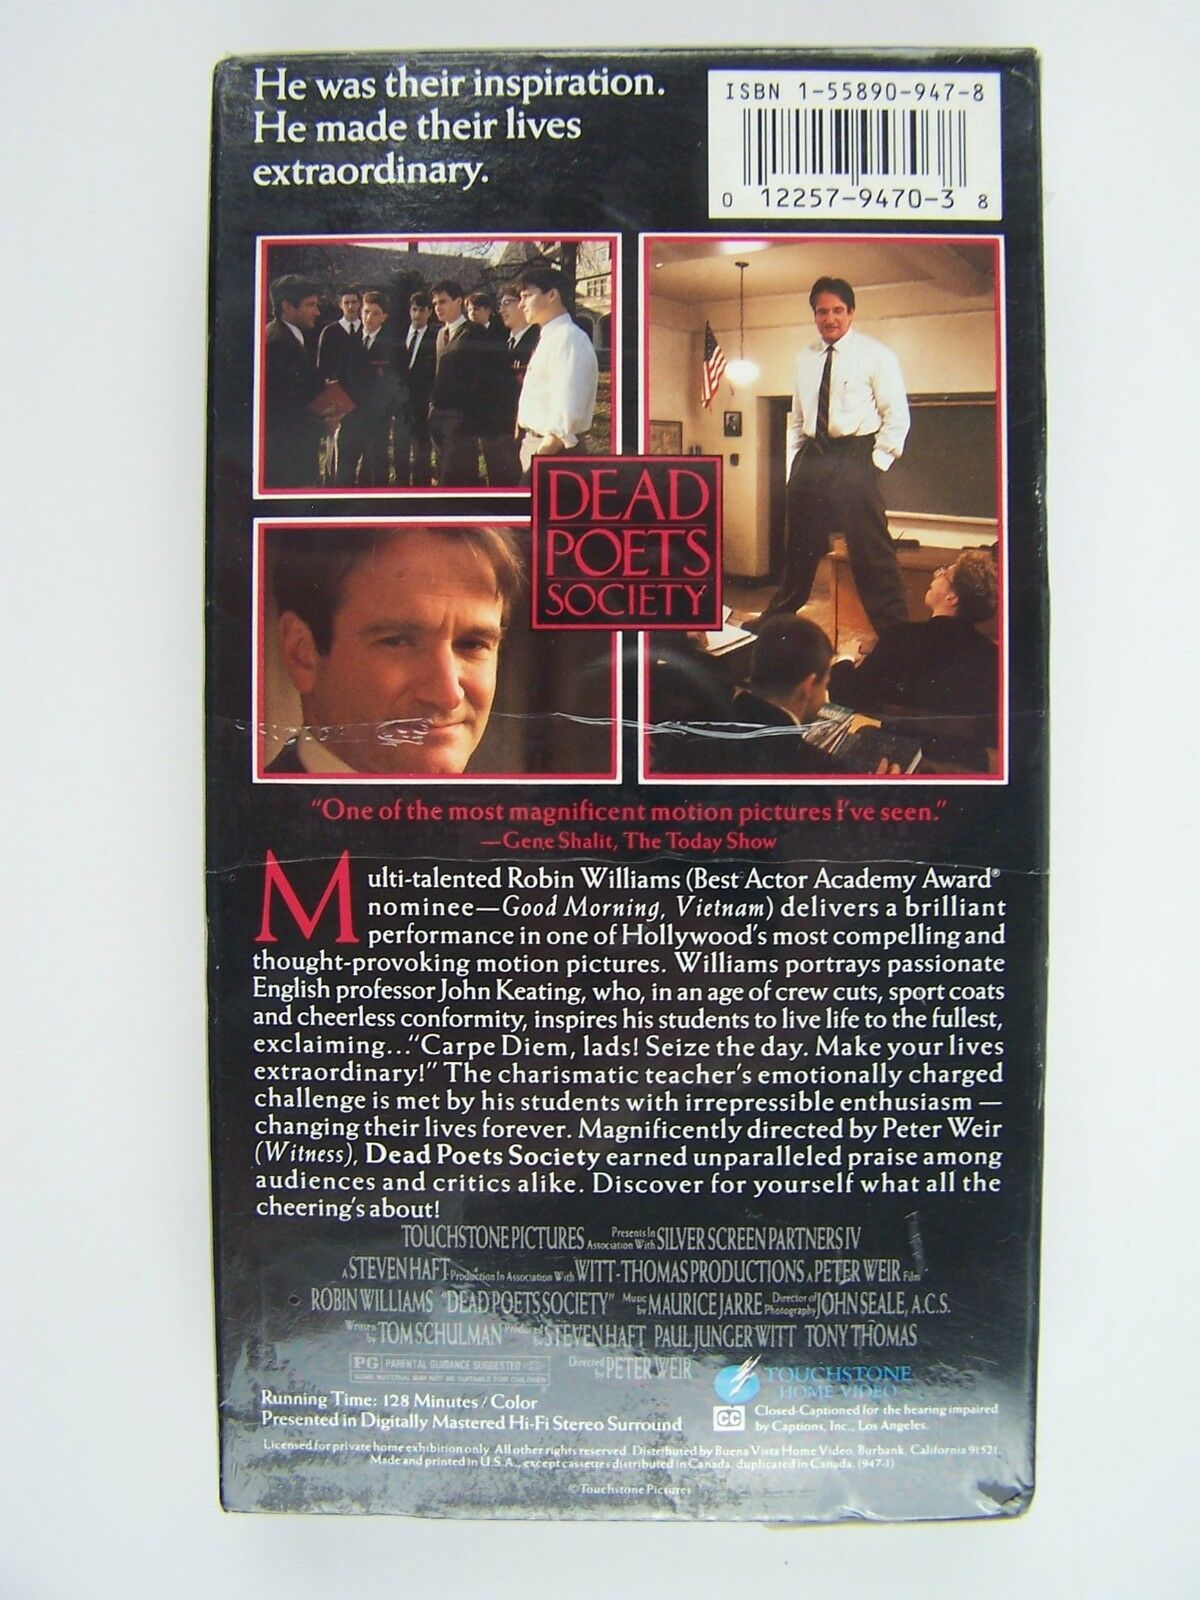 Dead Poets Society VHS Video New Factory Sealed 1225794